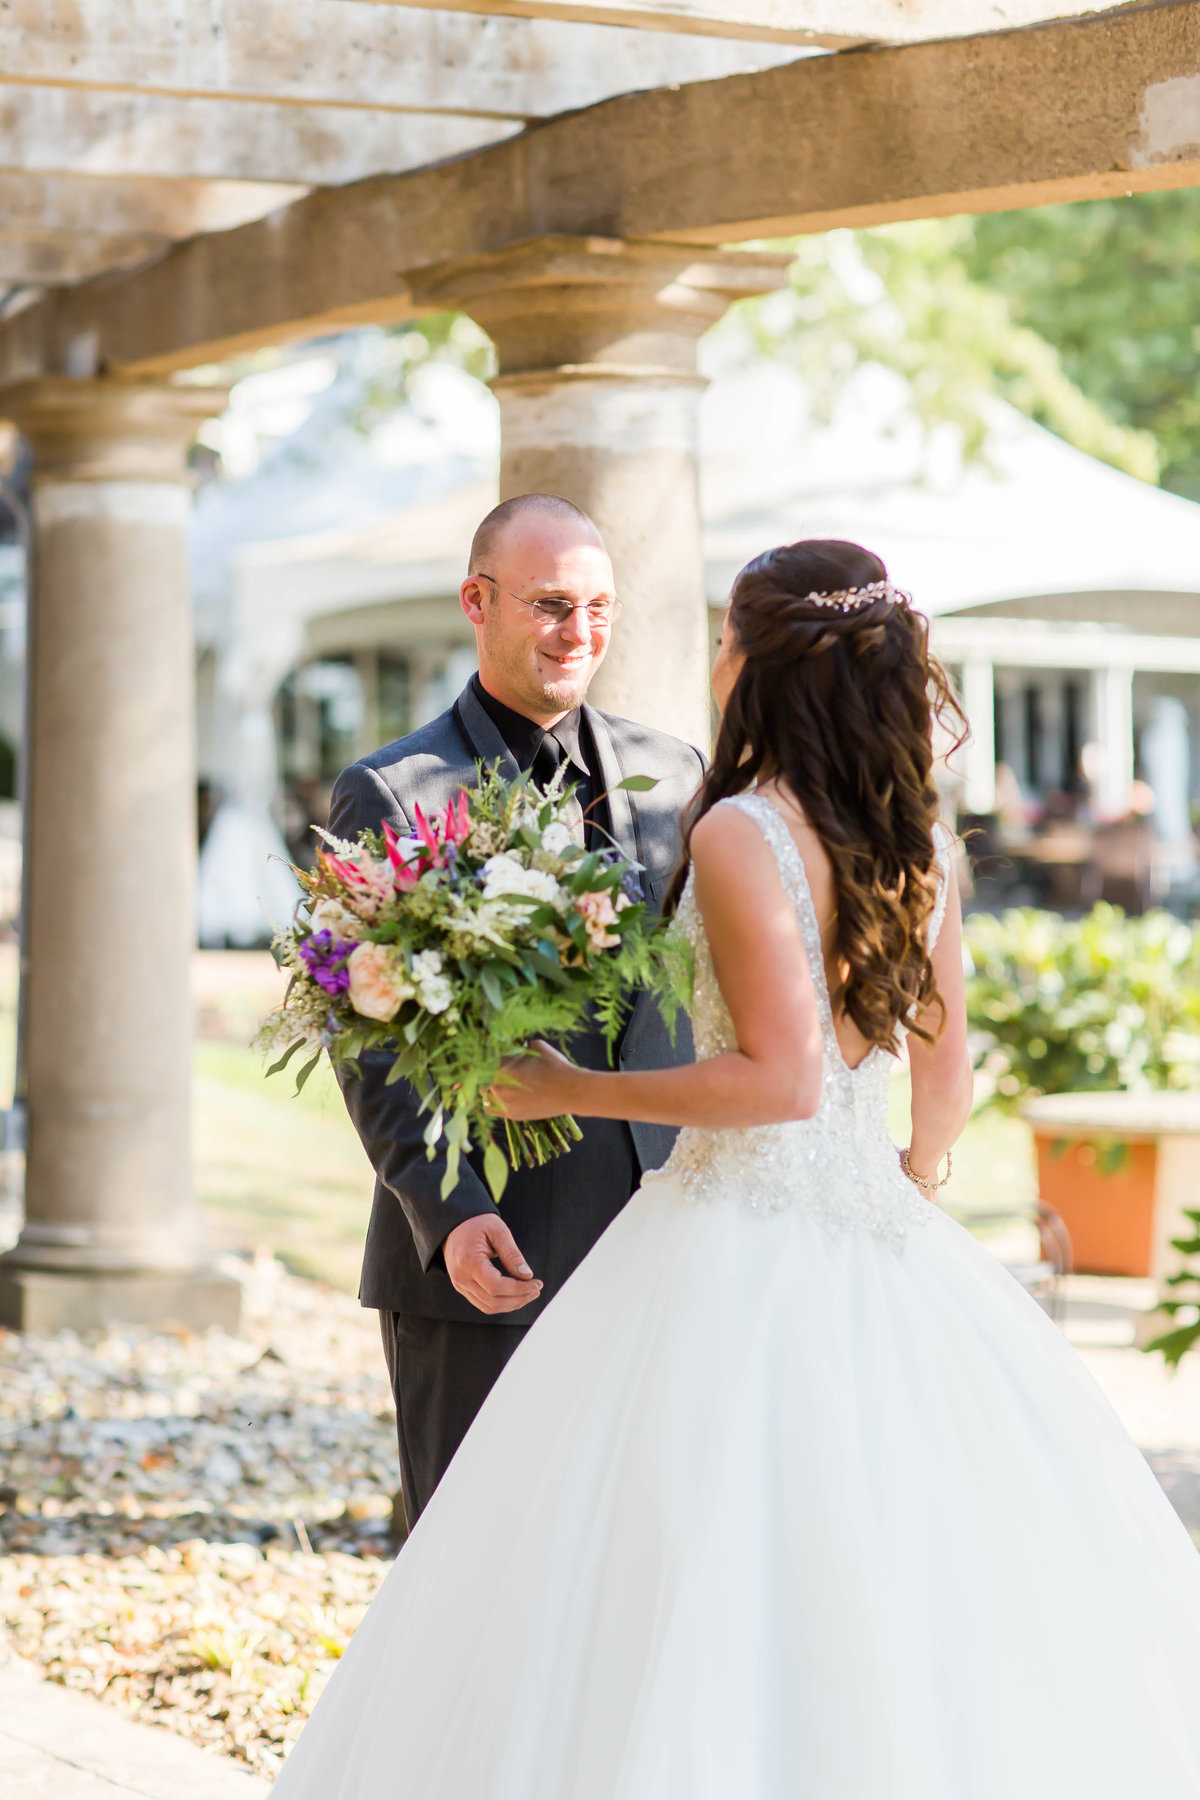 oaks-lakeside-ohio-wedding-loren-jackson-photography-33